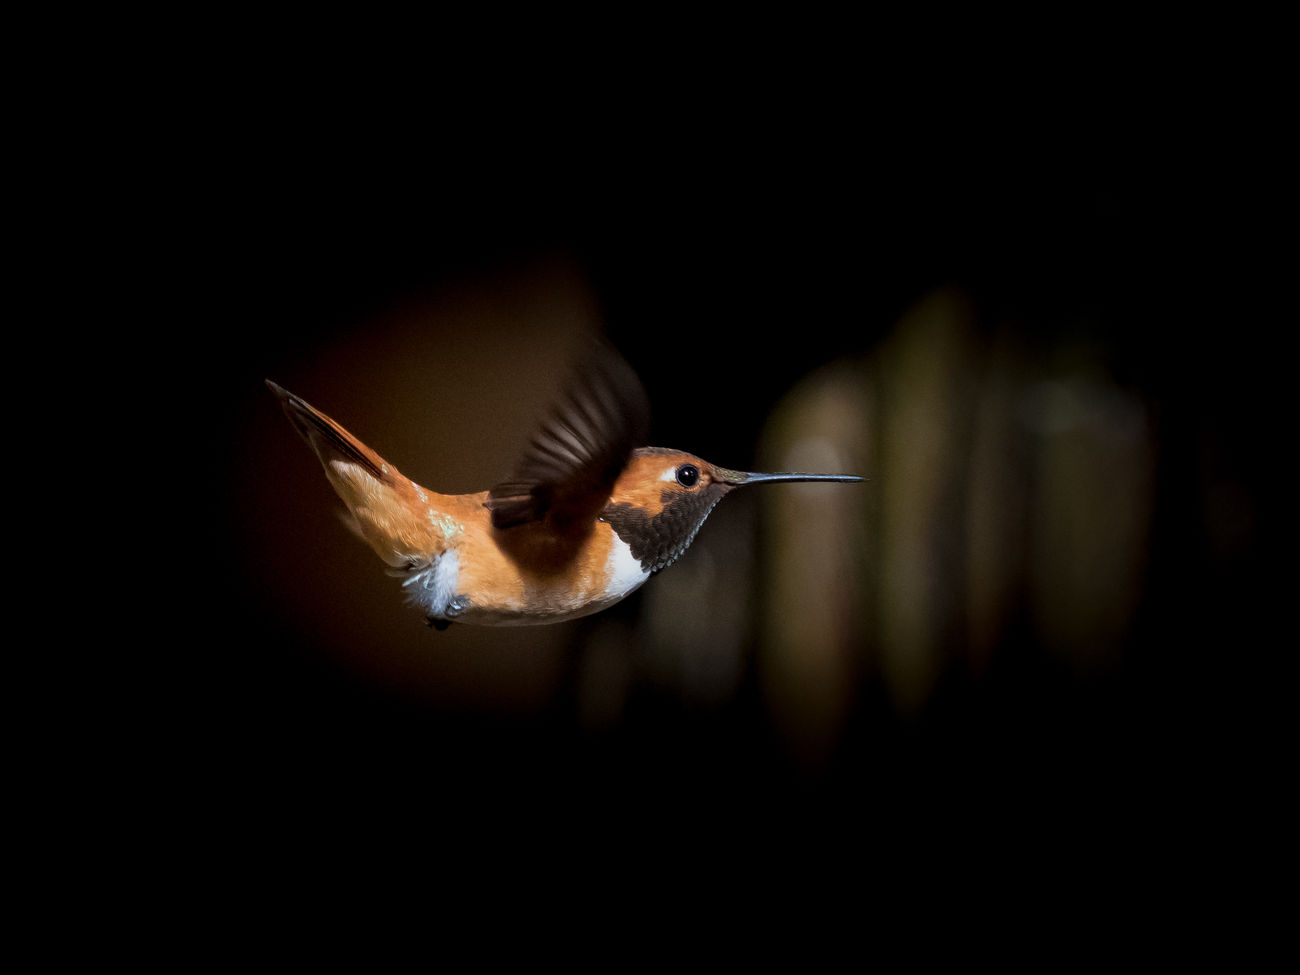 Animal Themes Animal Wildlife Animals In The Wild ArtWork Beak Beauty In Nature Bird Bird In Flight Black Background Blackground Close-up Day Flying Hummingbird Mid-air Motion Nature No People One Animal Outdoors Rufous Rufous Hummingbird Spread Wings TCPM Art Is Everywhere Break The Mold